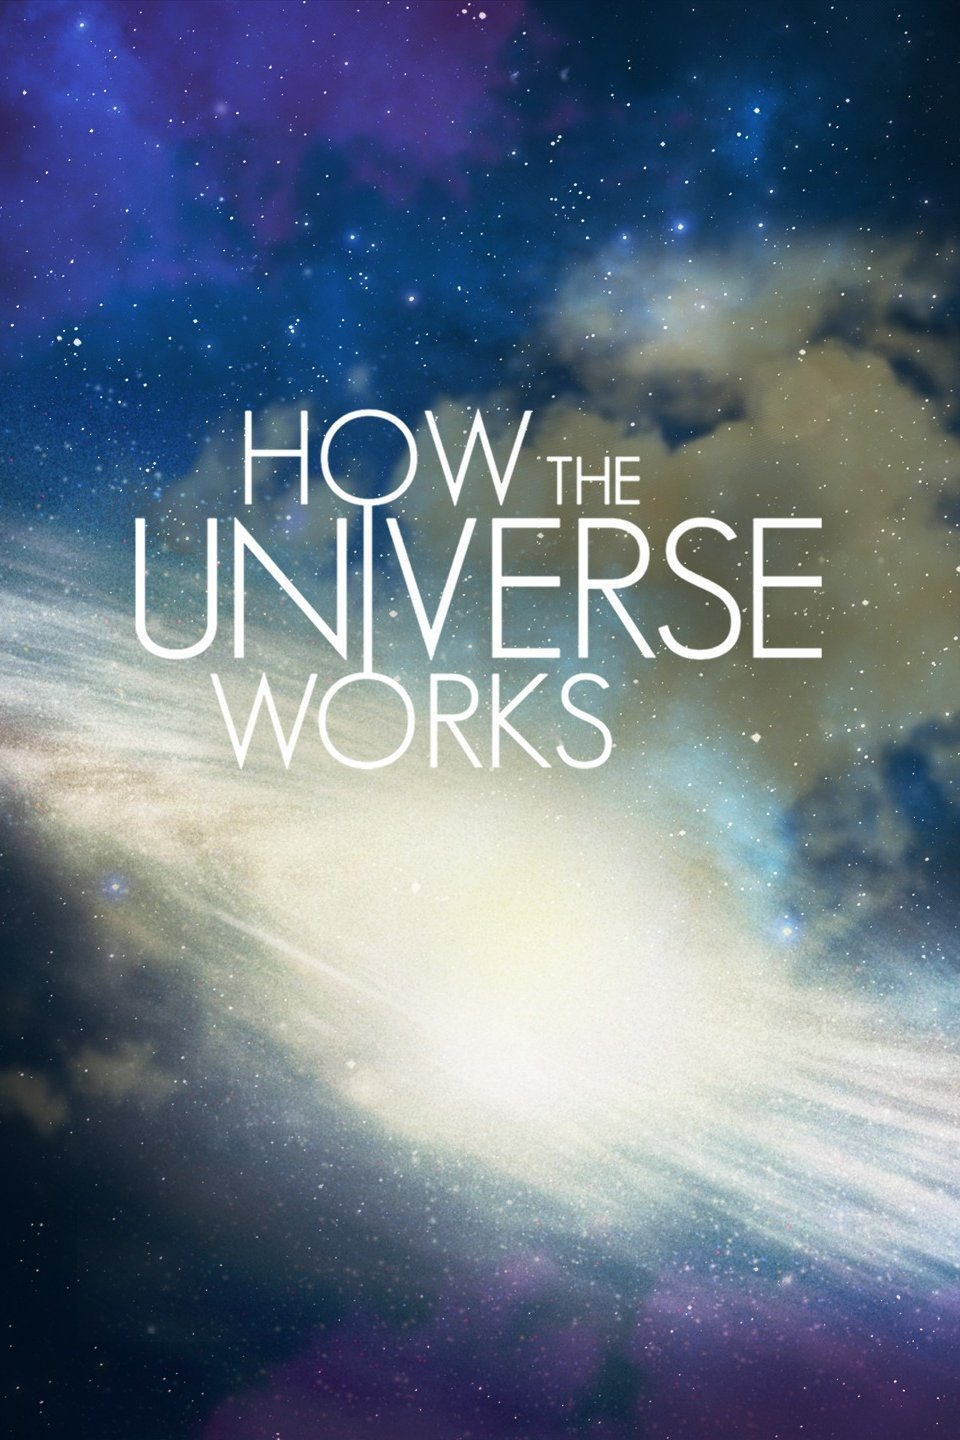 How the Universe Works Season 6-How the Universe Works 6